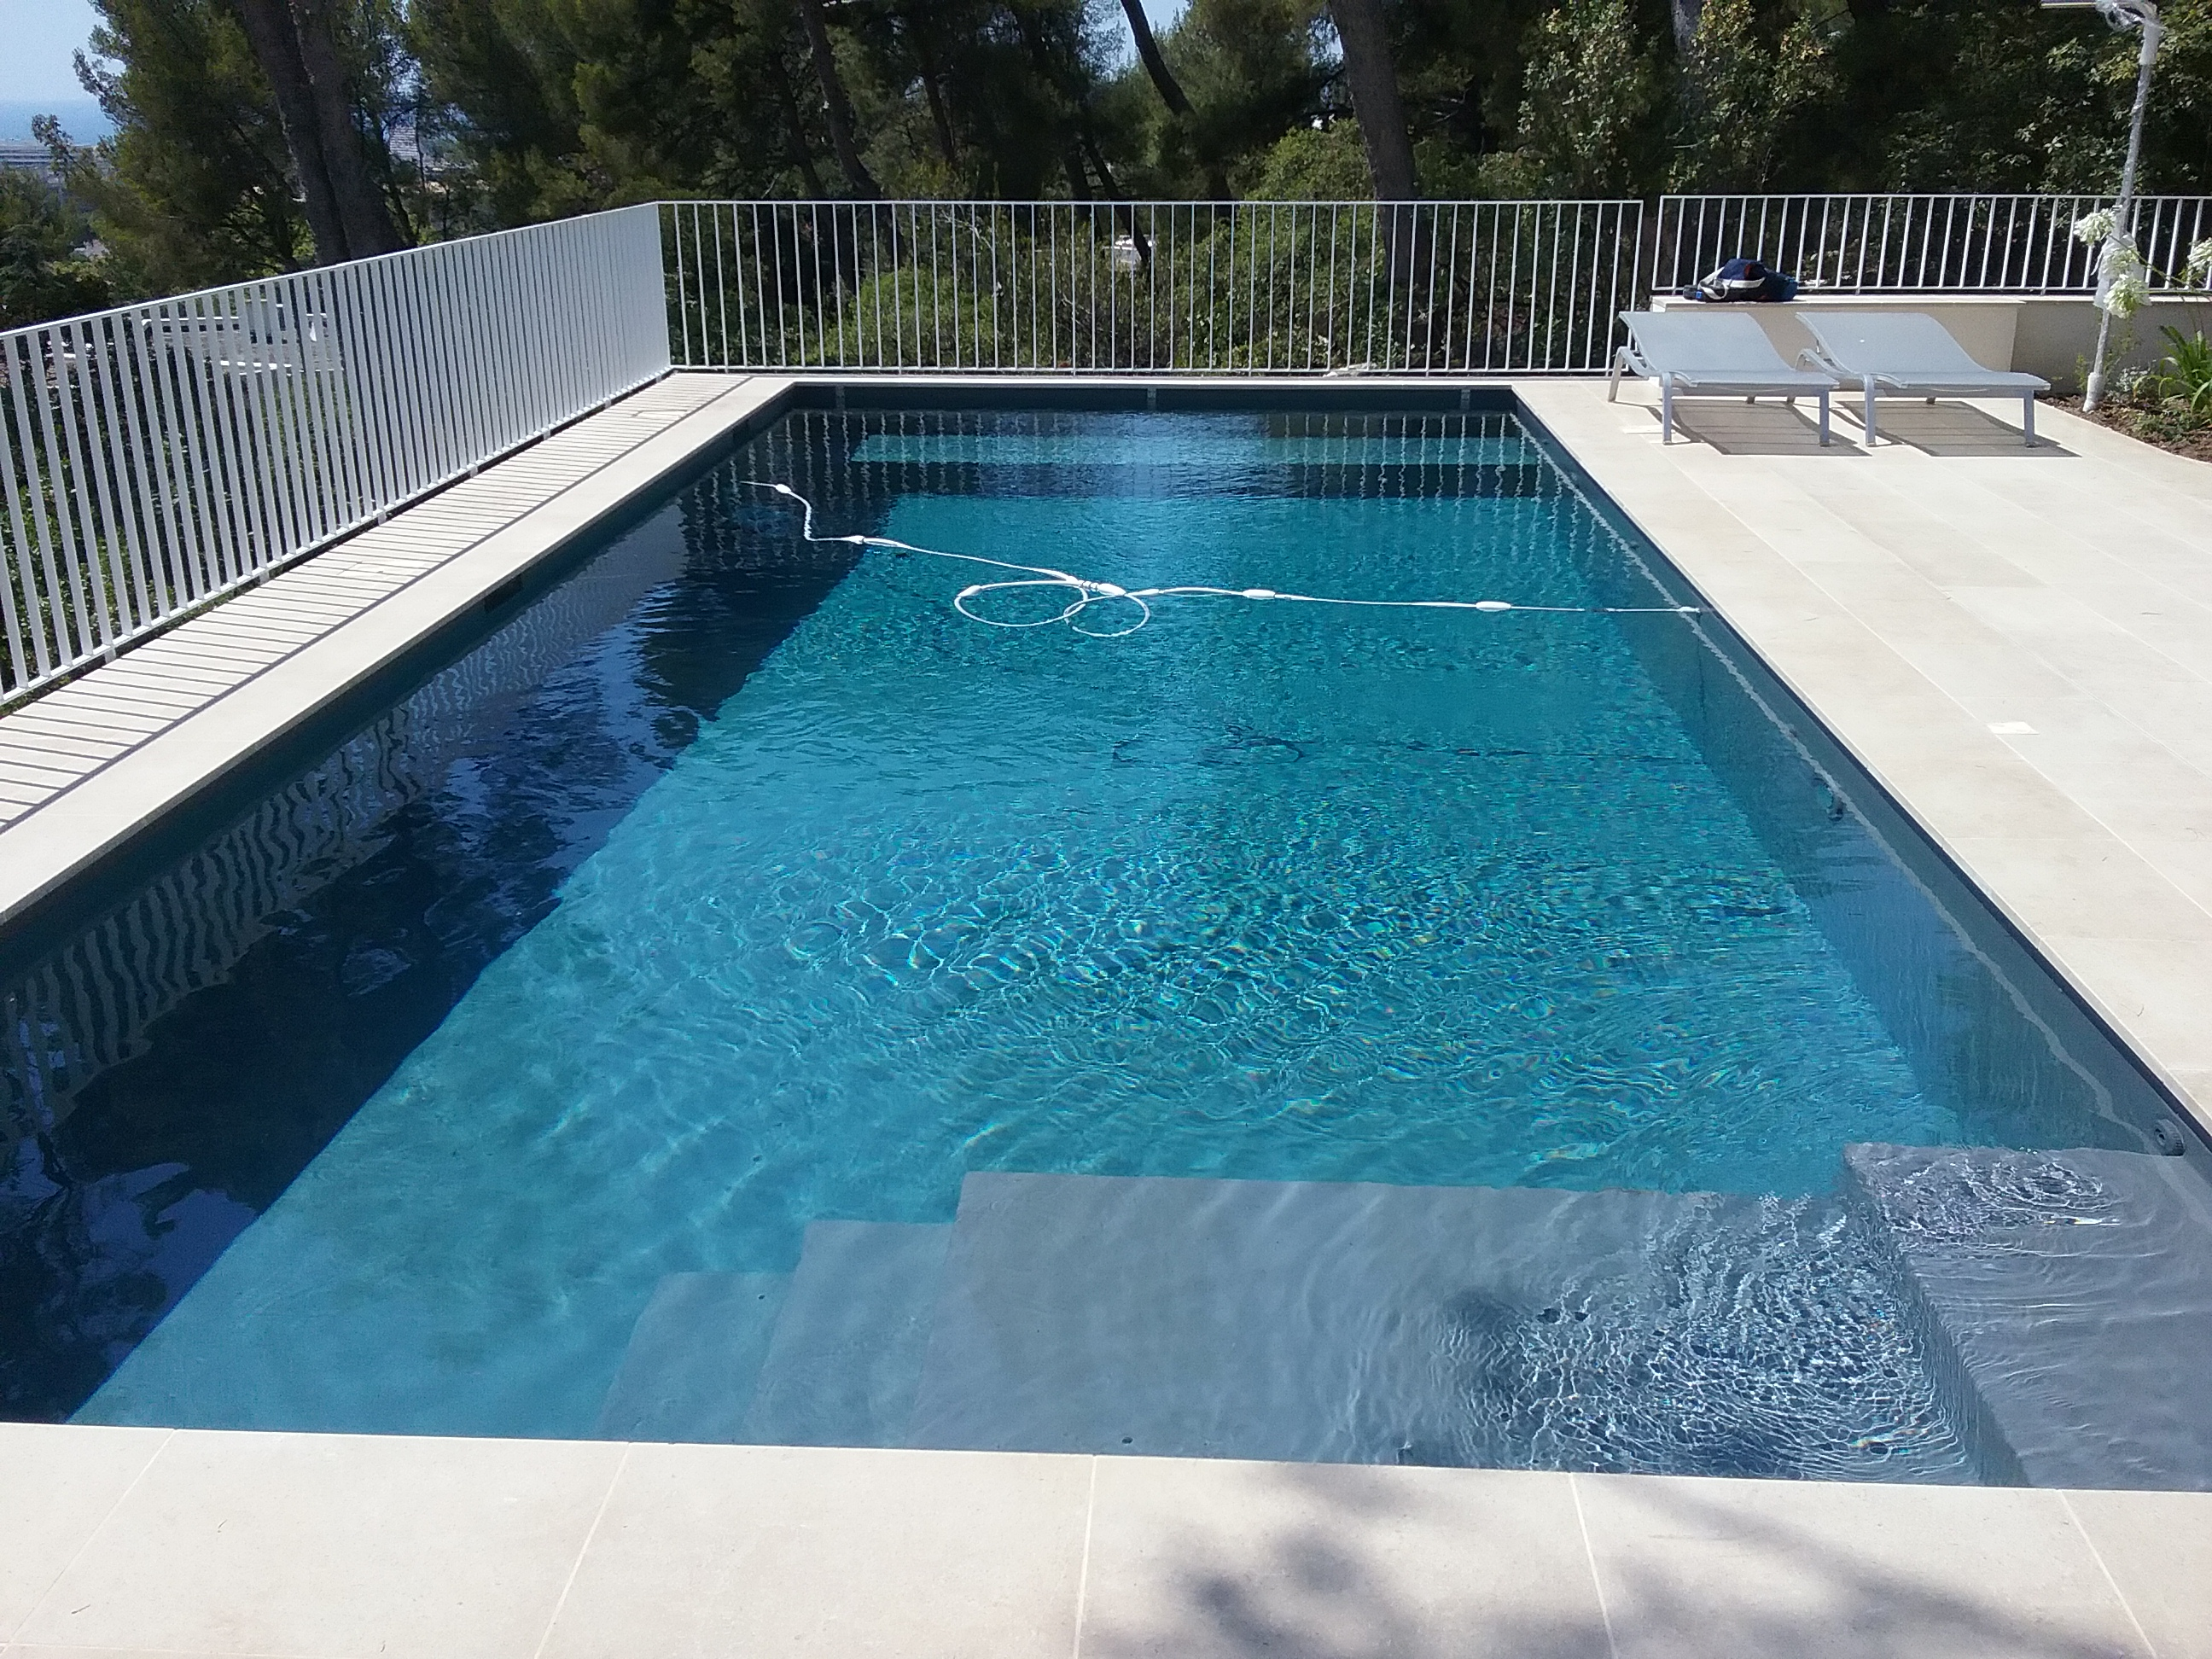 Construction de piscine toulon var le castellet st cyr for Piscine hors sol gris anthracite